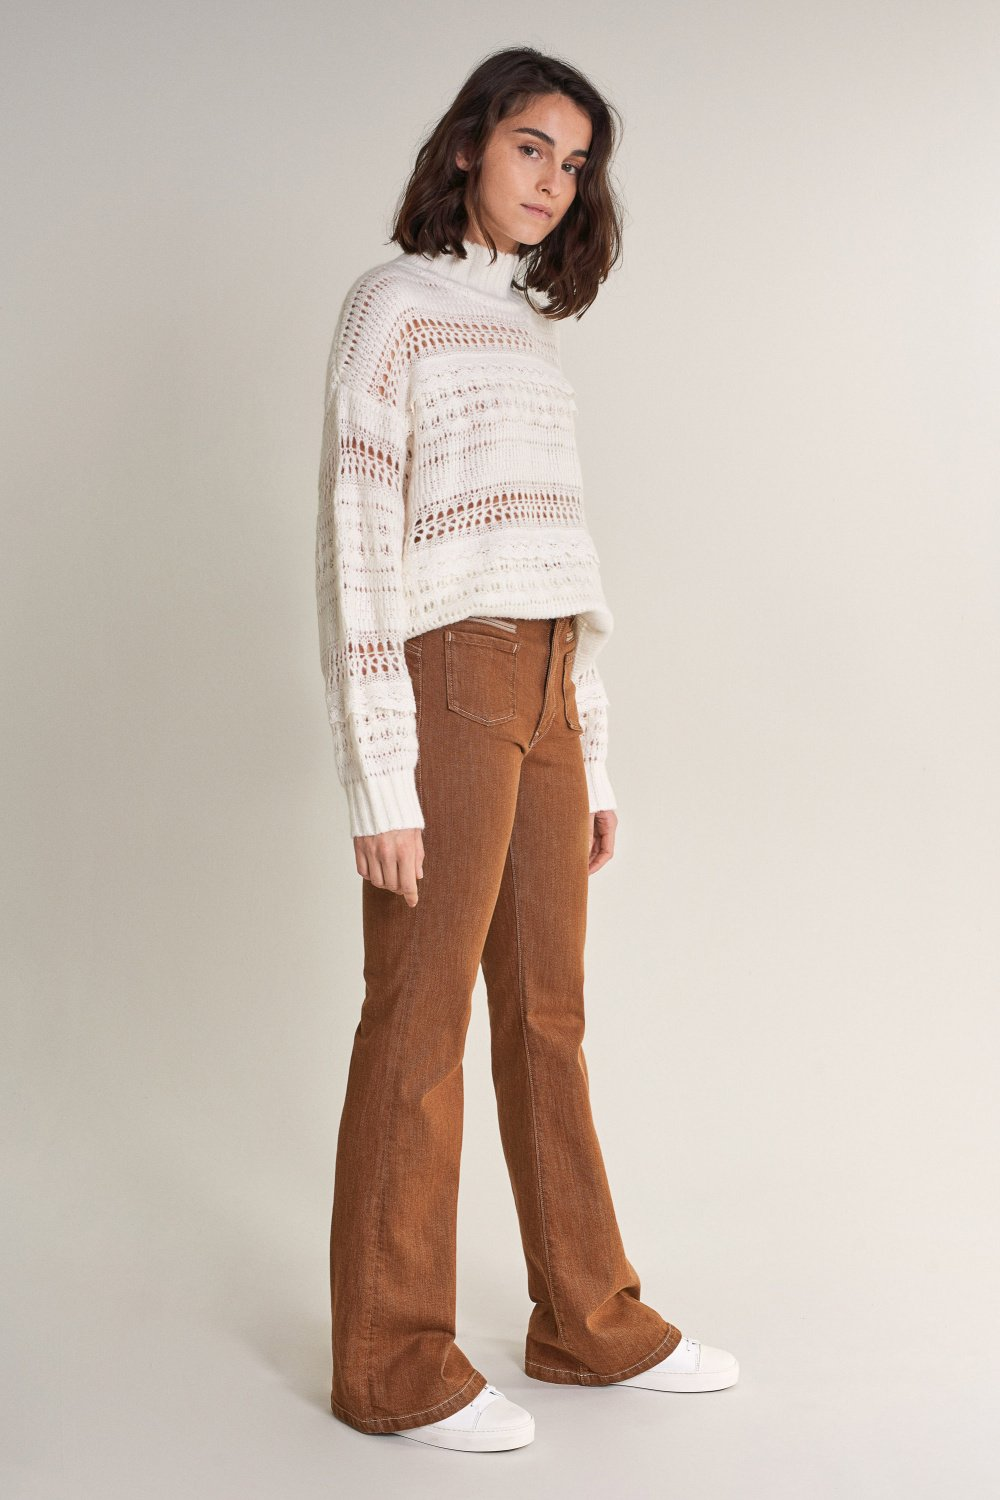 Thick knitted sweater with lace ribbon detail - Salsa